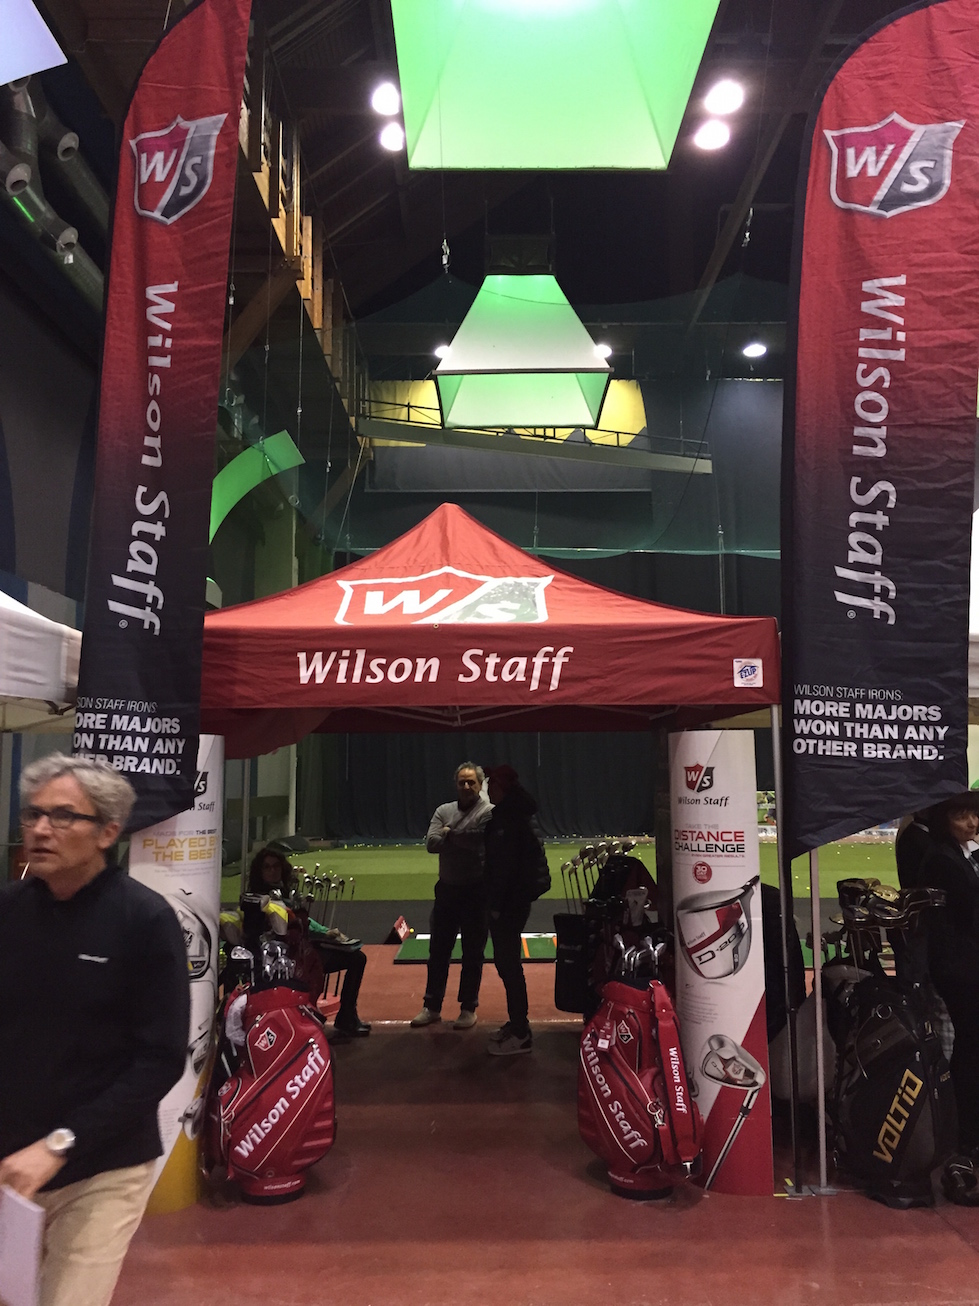 Fiera del Golf Parma 2015 le foto ed i video di Italian Golf Show e le prove dei materiali44 - Fiera del Golf Parma: le foto ed i video di Italian Golf Show